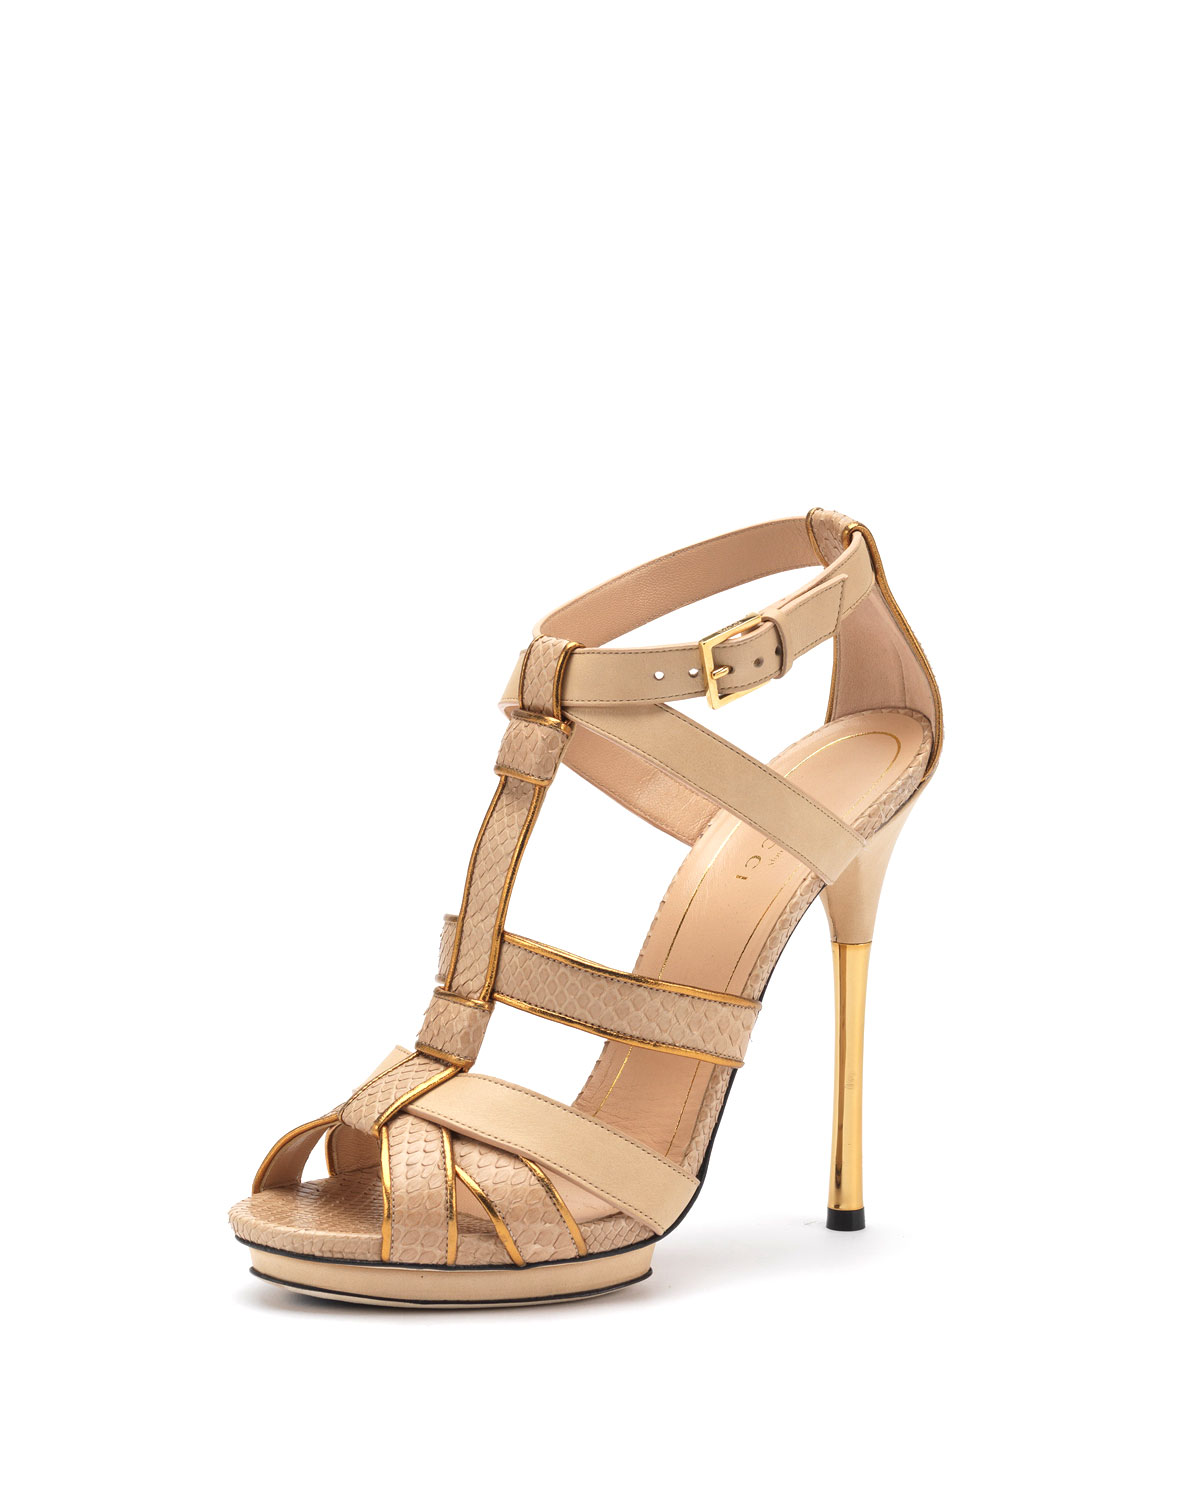 gucci malika high heel sandal in beige nude lyst. Black Bedroom Furniture Sets. Home Design Ideas